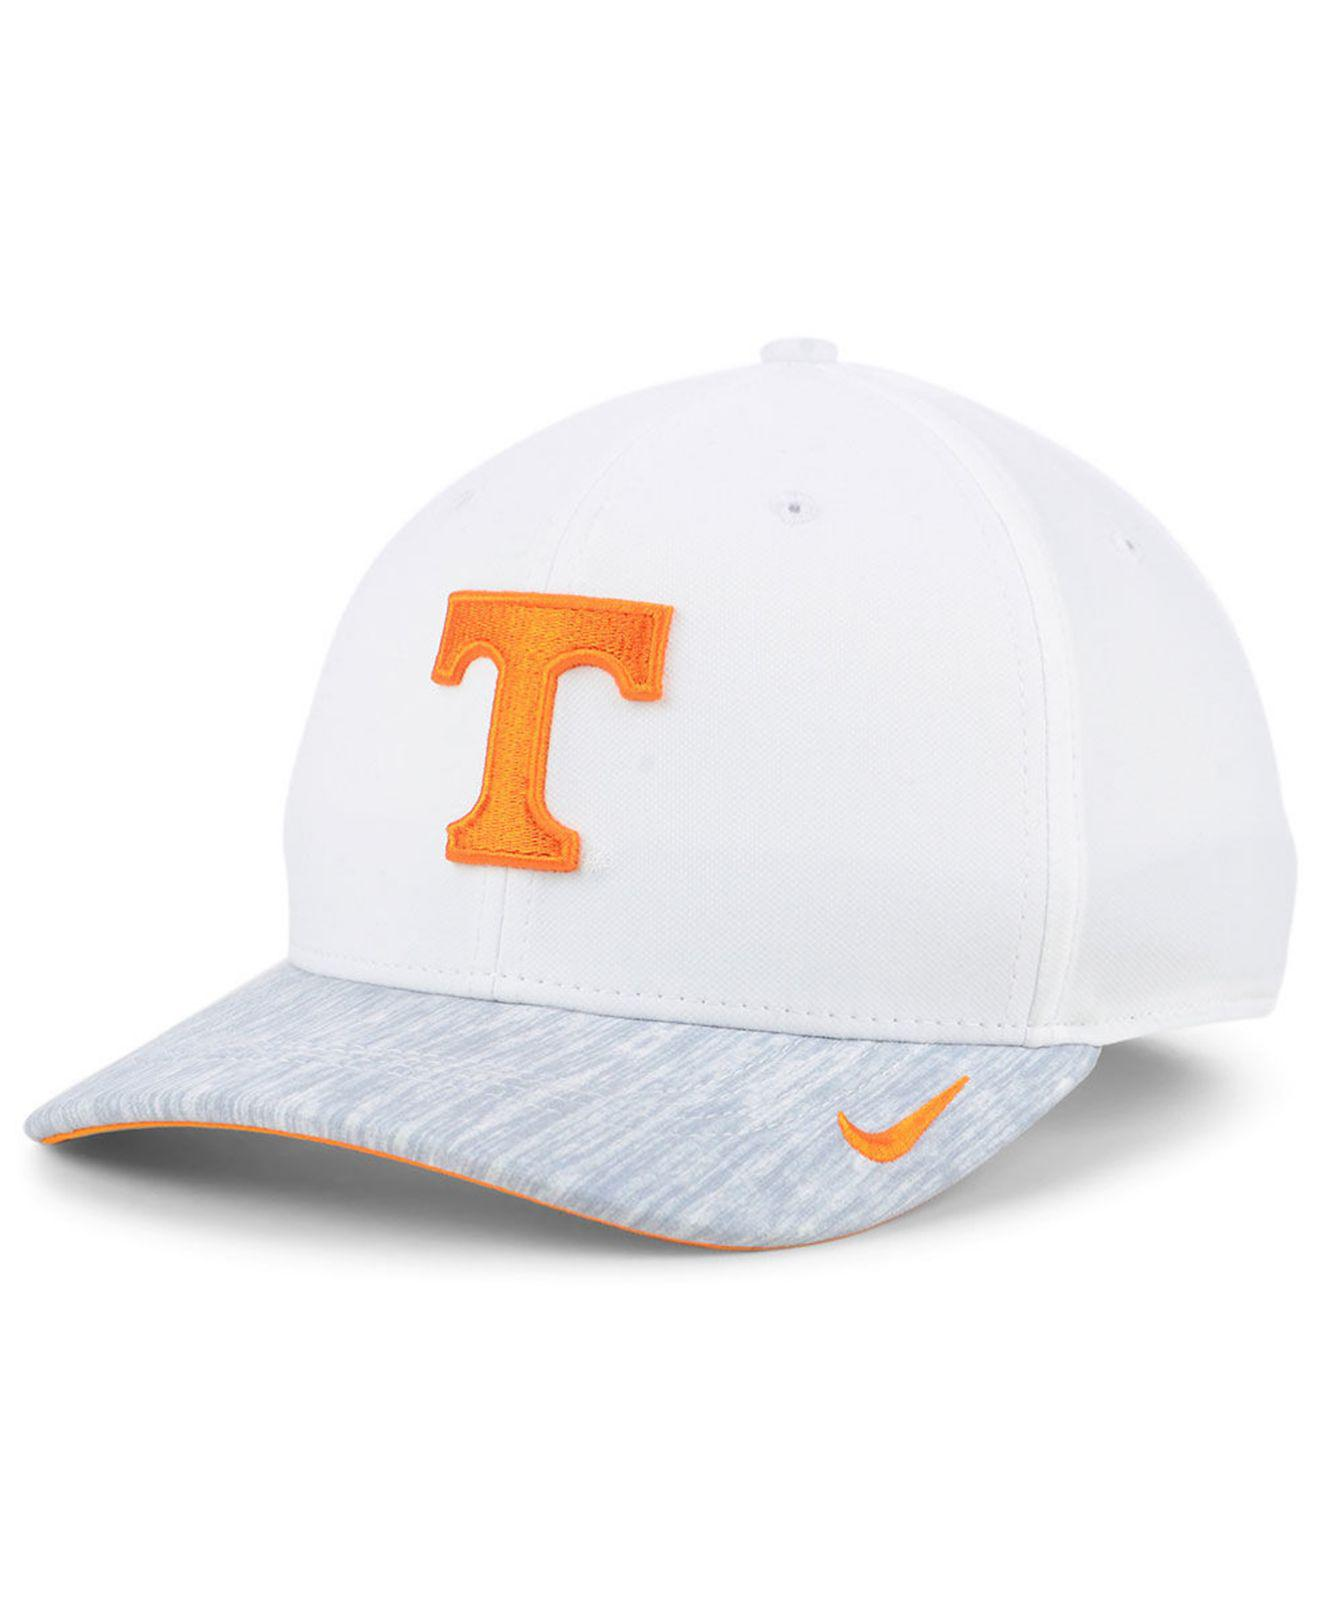 702d9be3 Lyst - Nike Tennessee Volunteers Arobill Swoosh Flex Cap in White ...